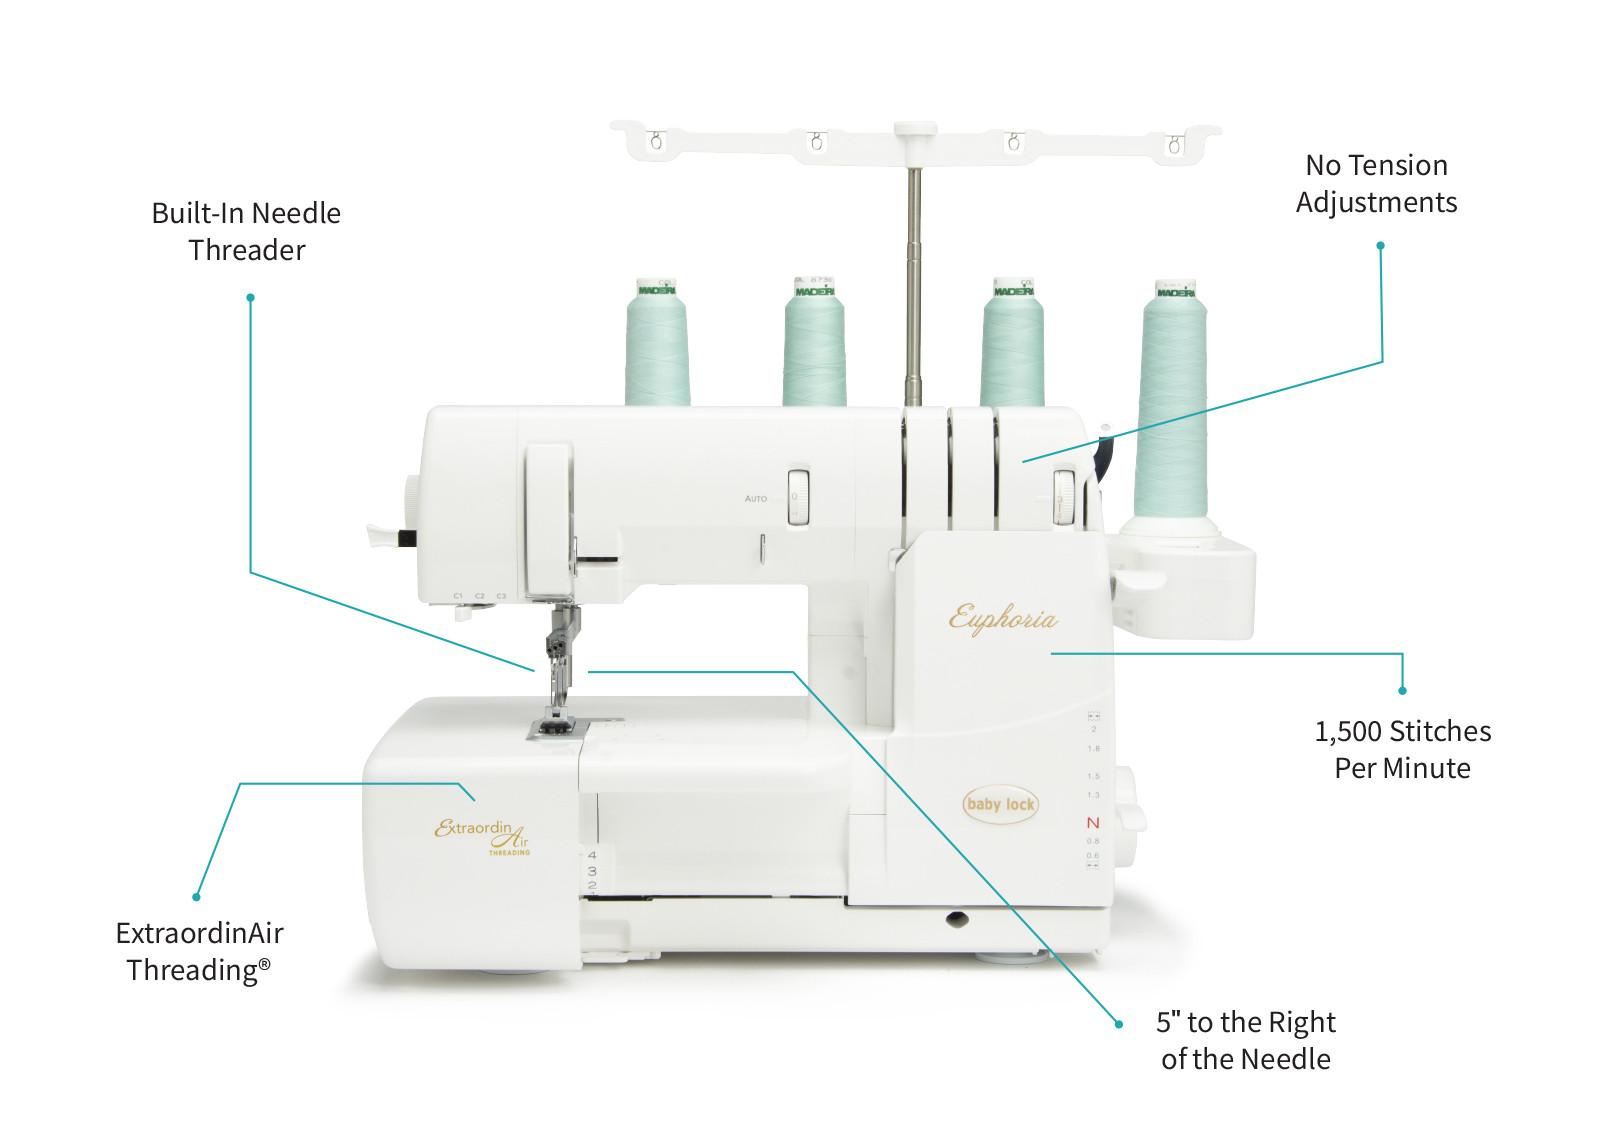 Baby Lock Euphoria Cover Stitch Serger Sewing Machine gives a professional finish to projects